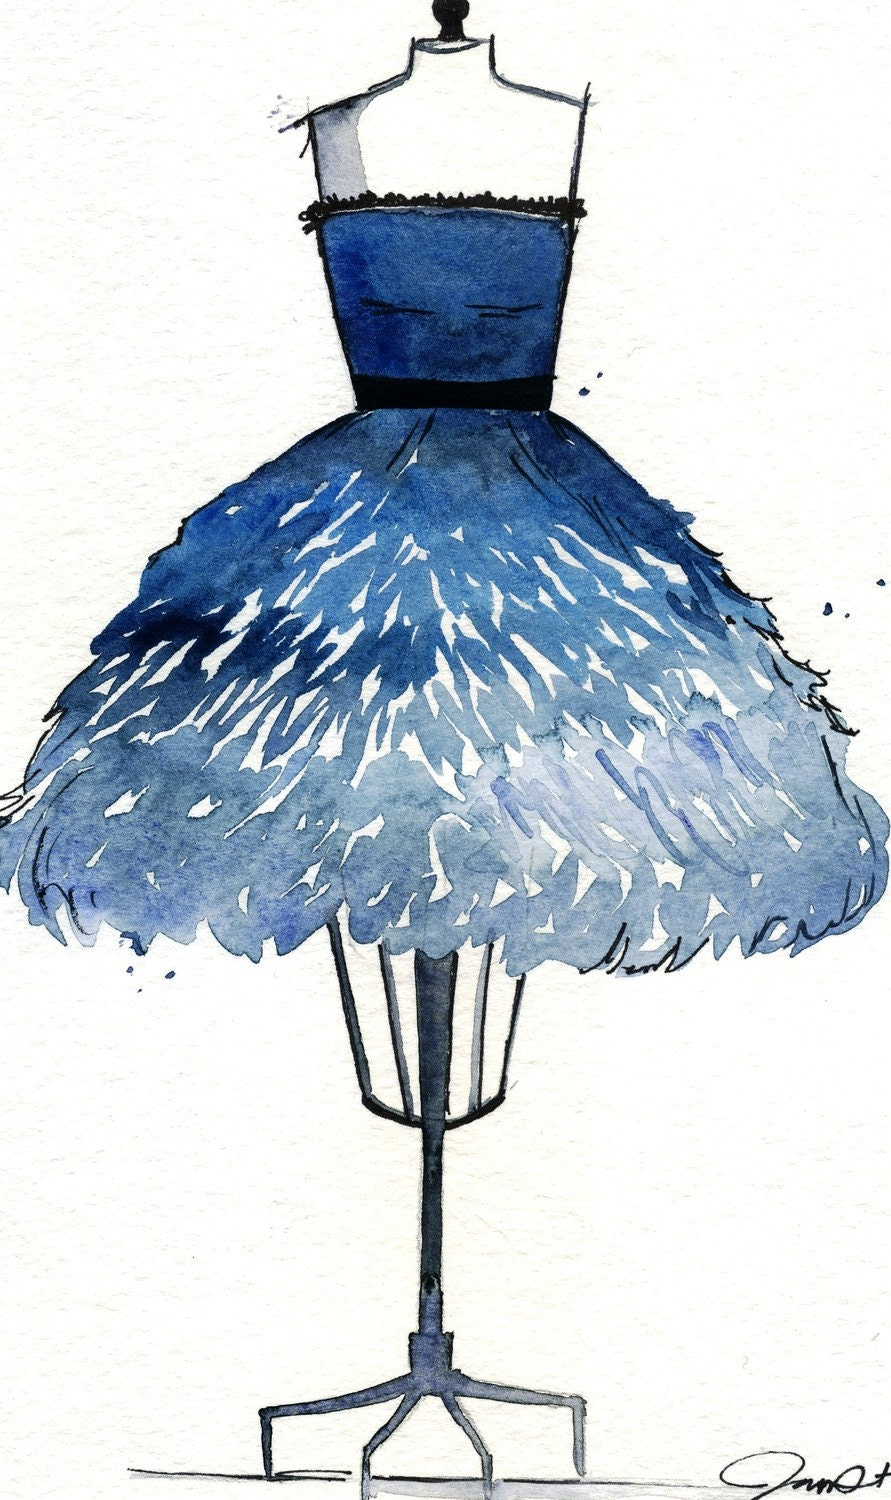 Watercolor Fashion Illustration: Birds of a Feather Dress print